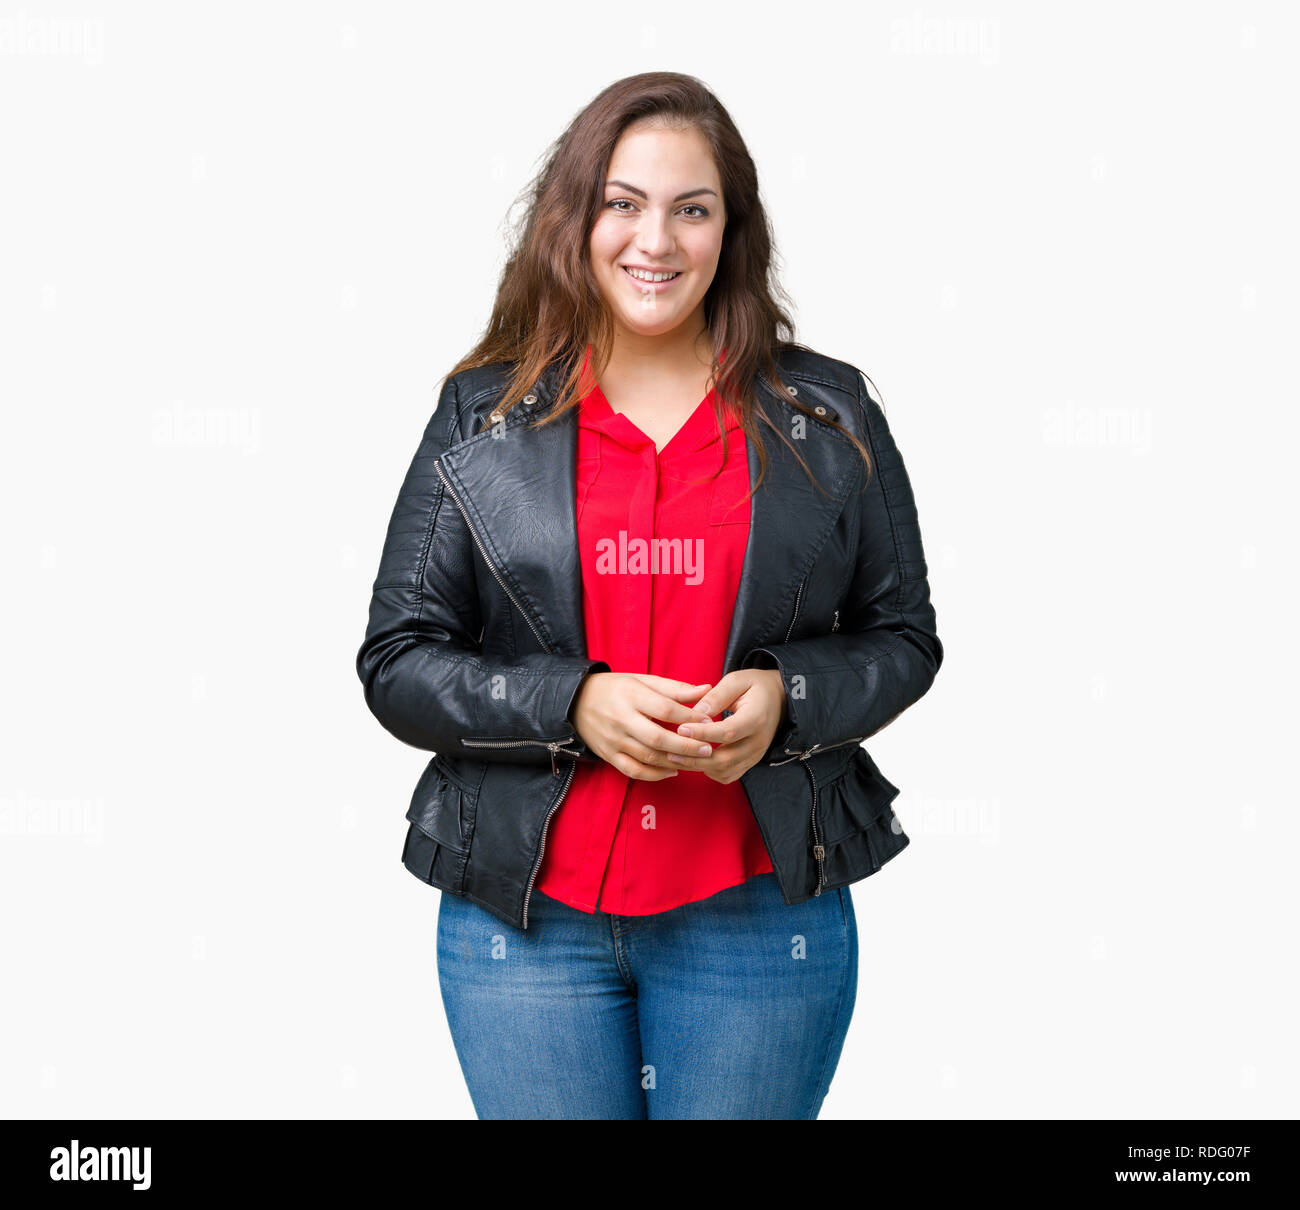 1d5febf41d1a1 Beautiful plus size young woman wearing a fashion leather jacket over  isolated background Hands together and